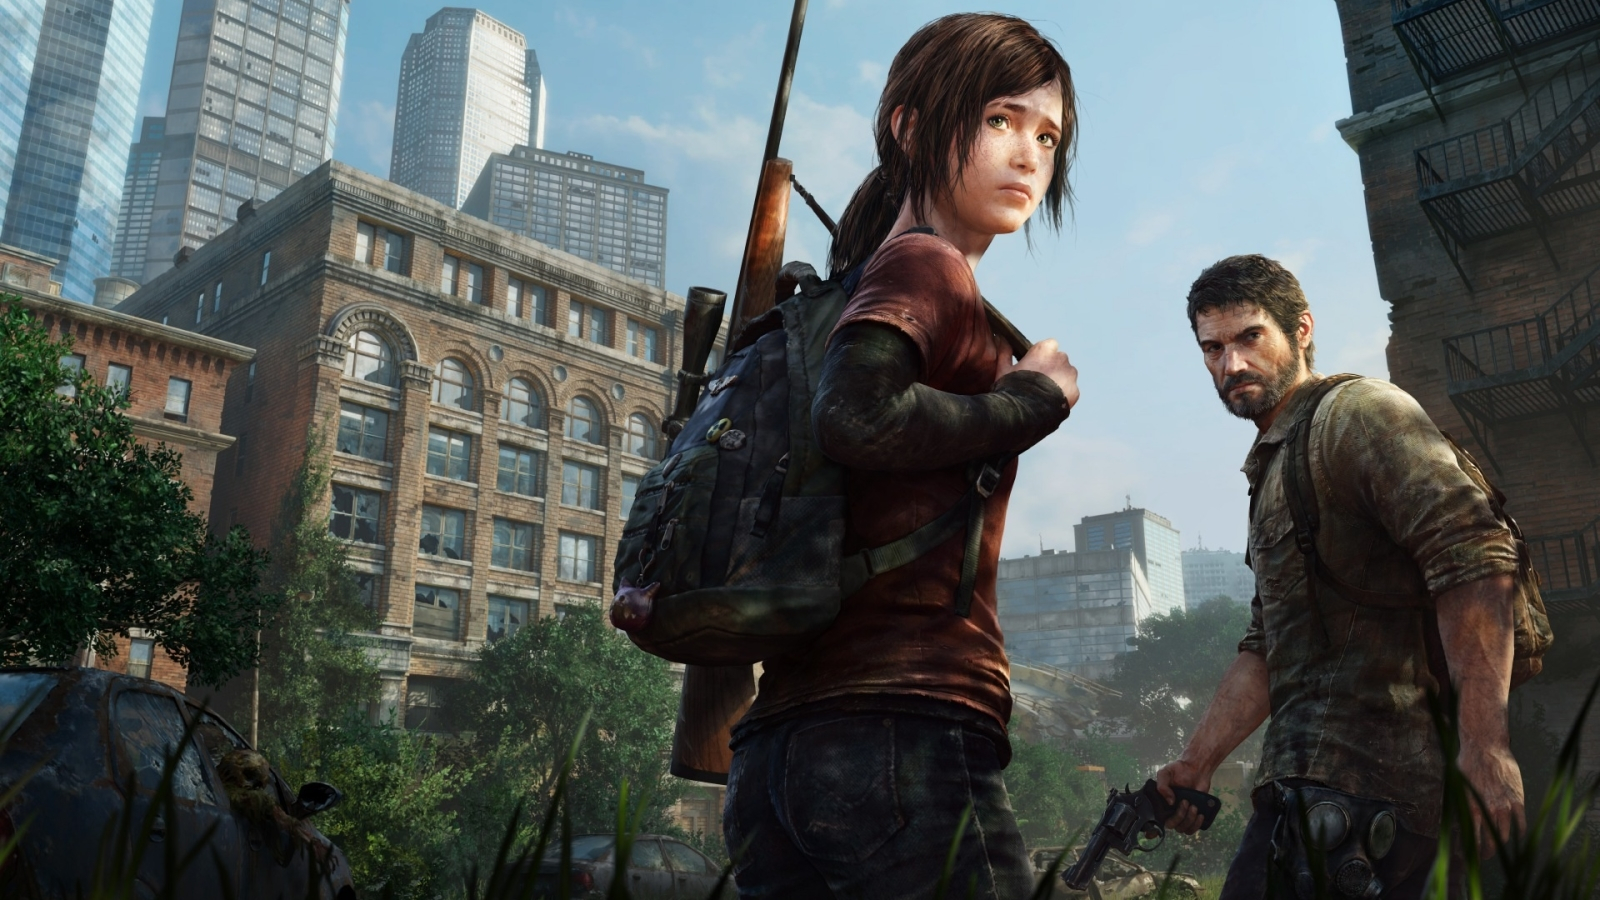 Создатели сериала по мотивам The Last of Us определились с актёрами на роли Джоэла и Элли